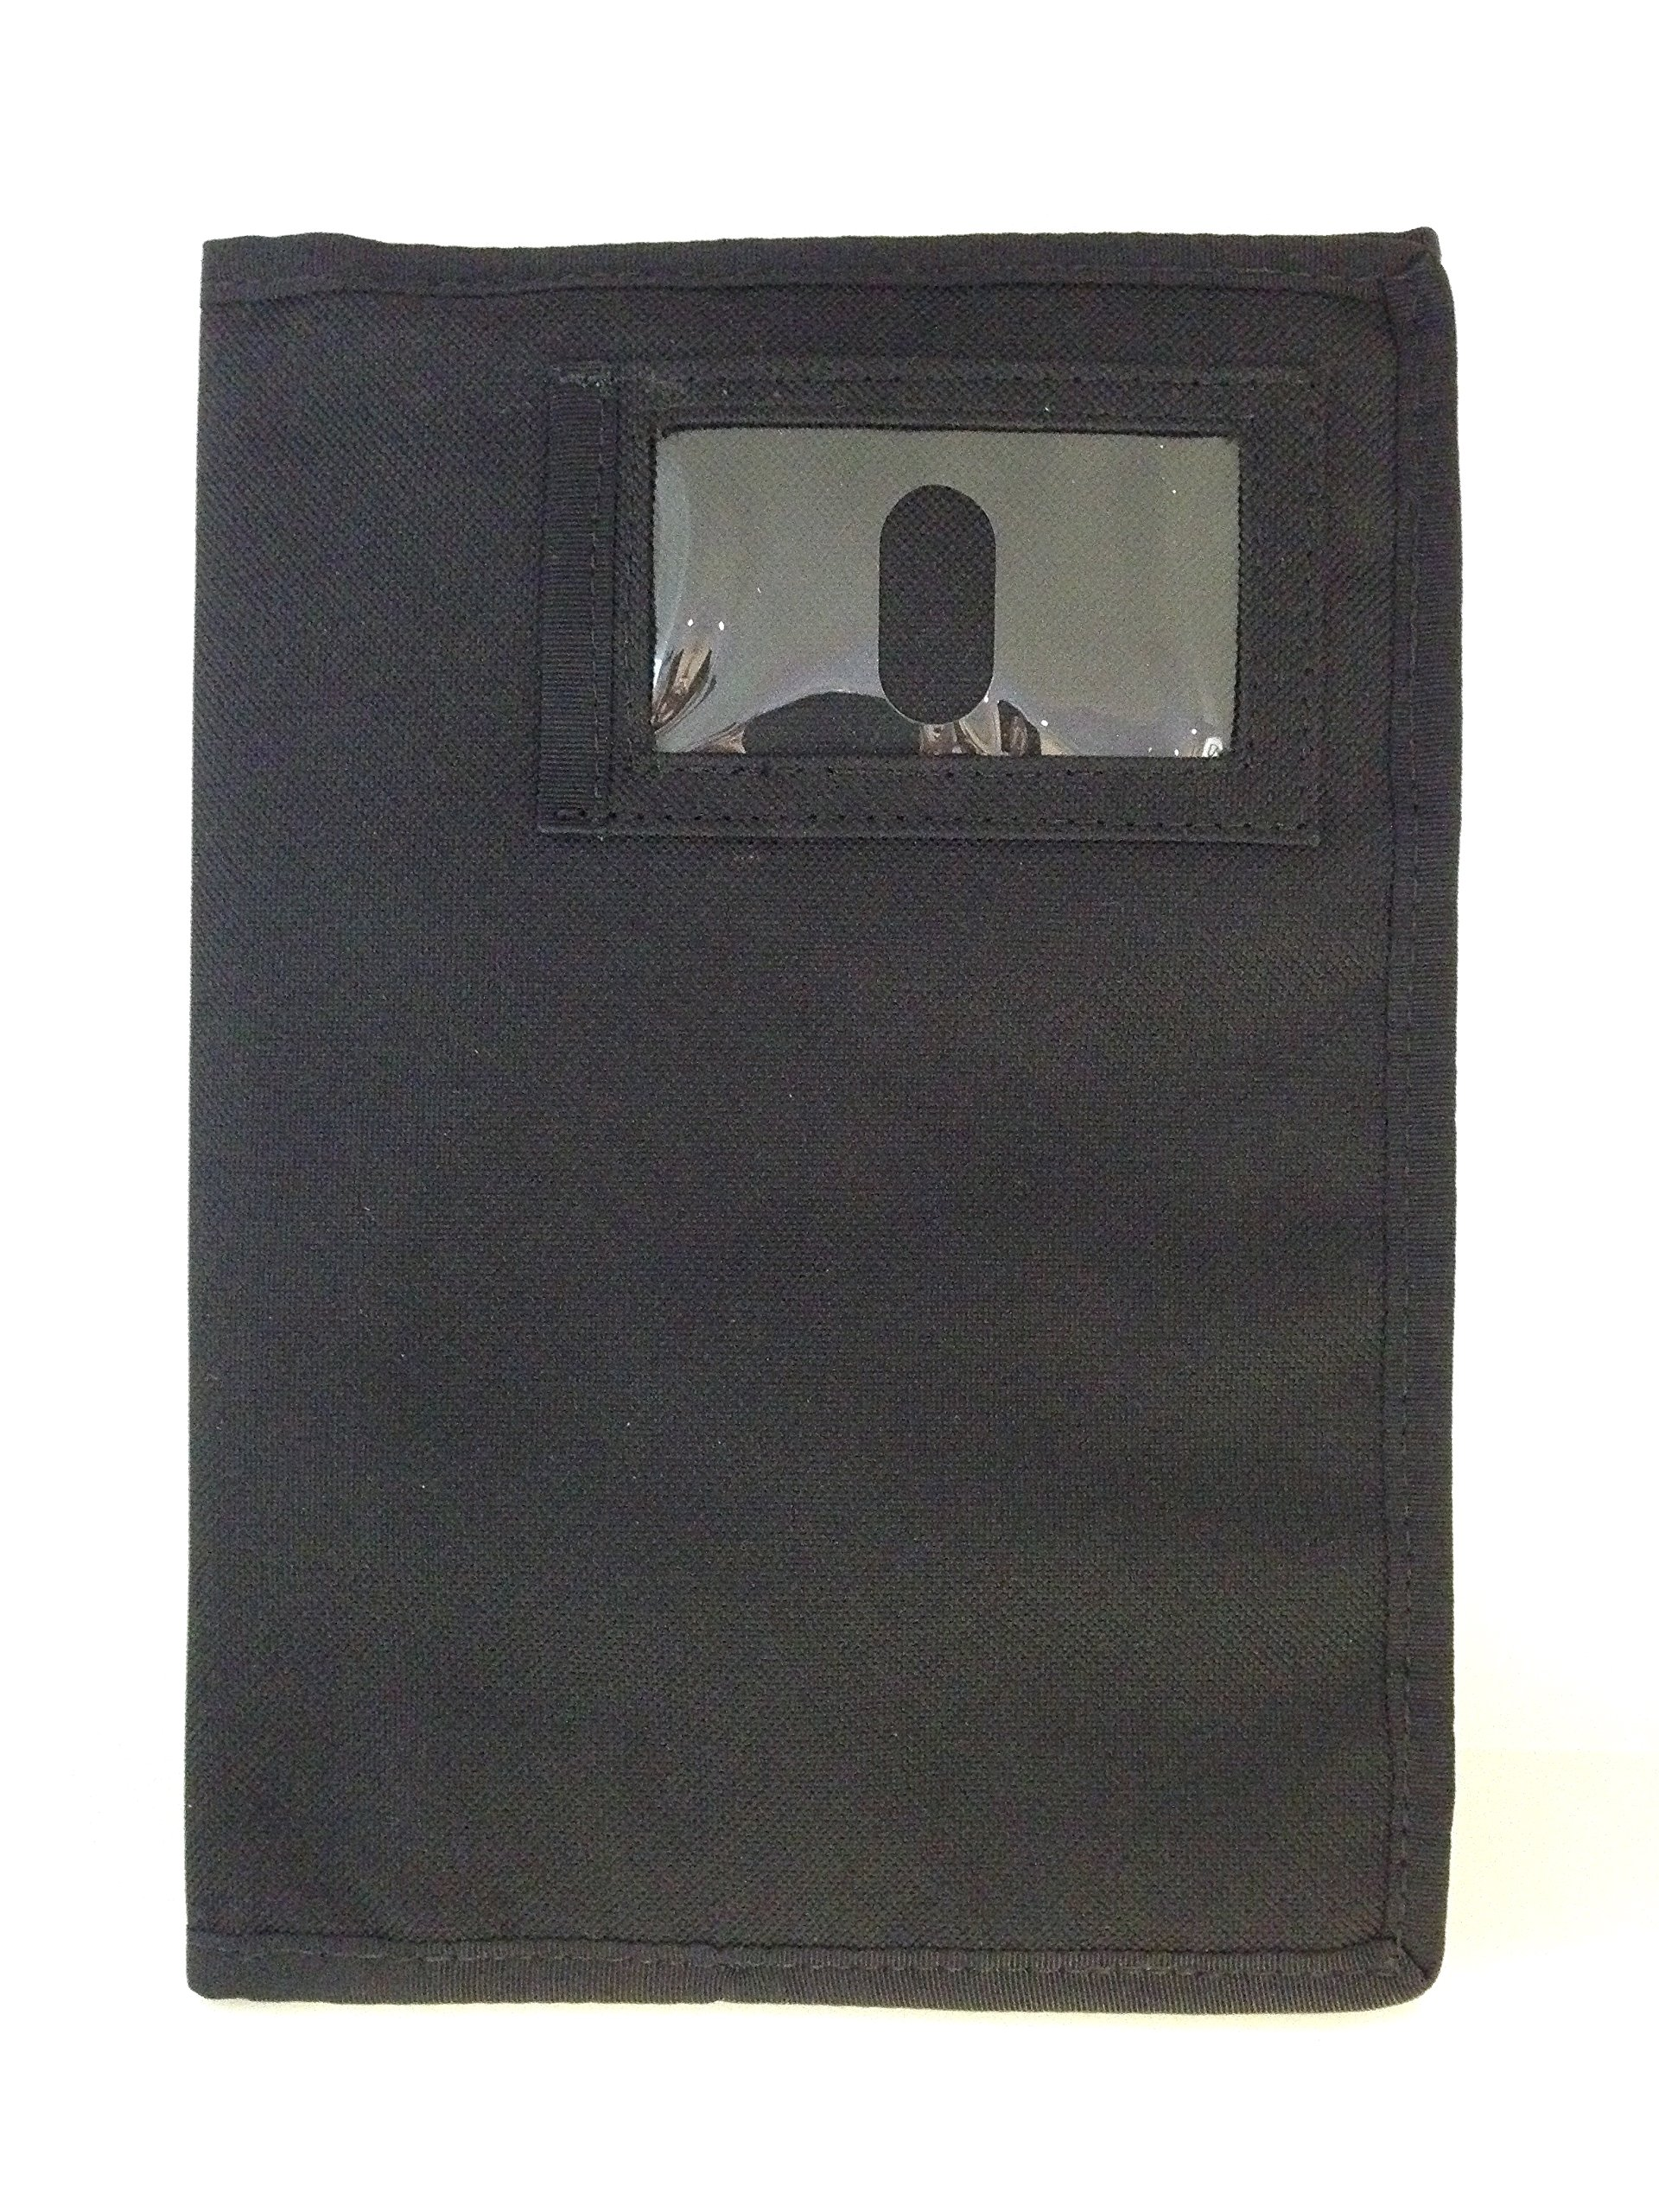 Bala Gear Note Pad/Steno Pad Carrier Organizer by Bala Gear